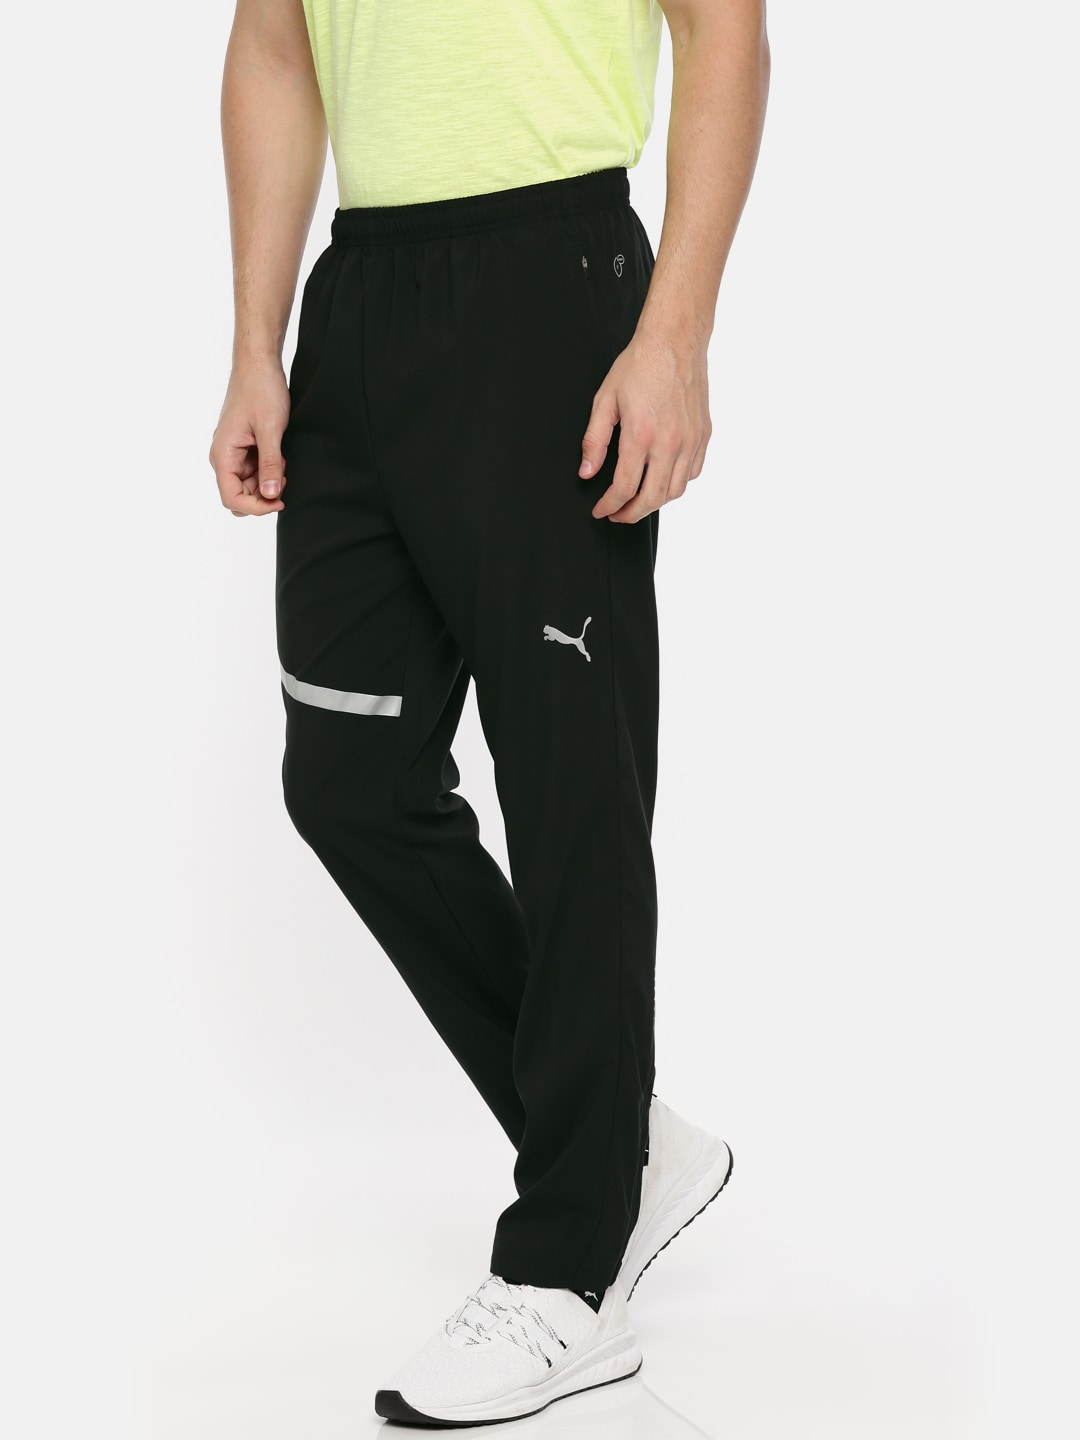 ac3f18ba44e7 Puma Cat Track Pants Pants Patiala - Buy Puma Cat Track Pants Pants Patiala  online in India